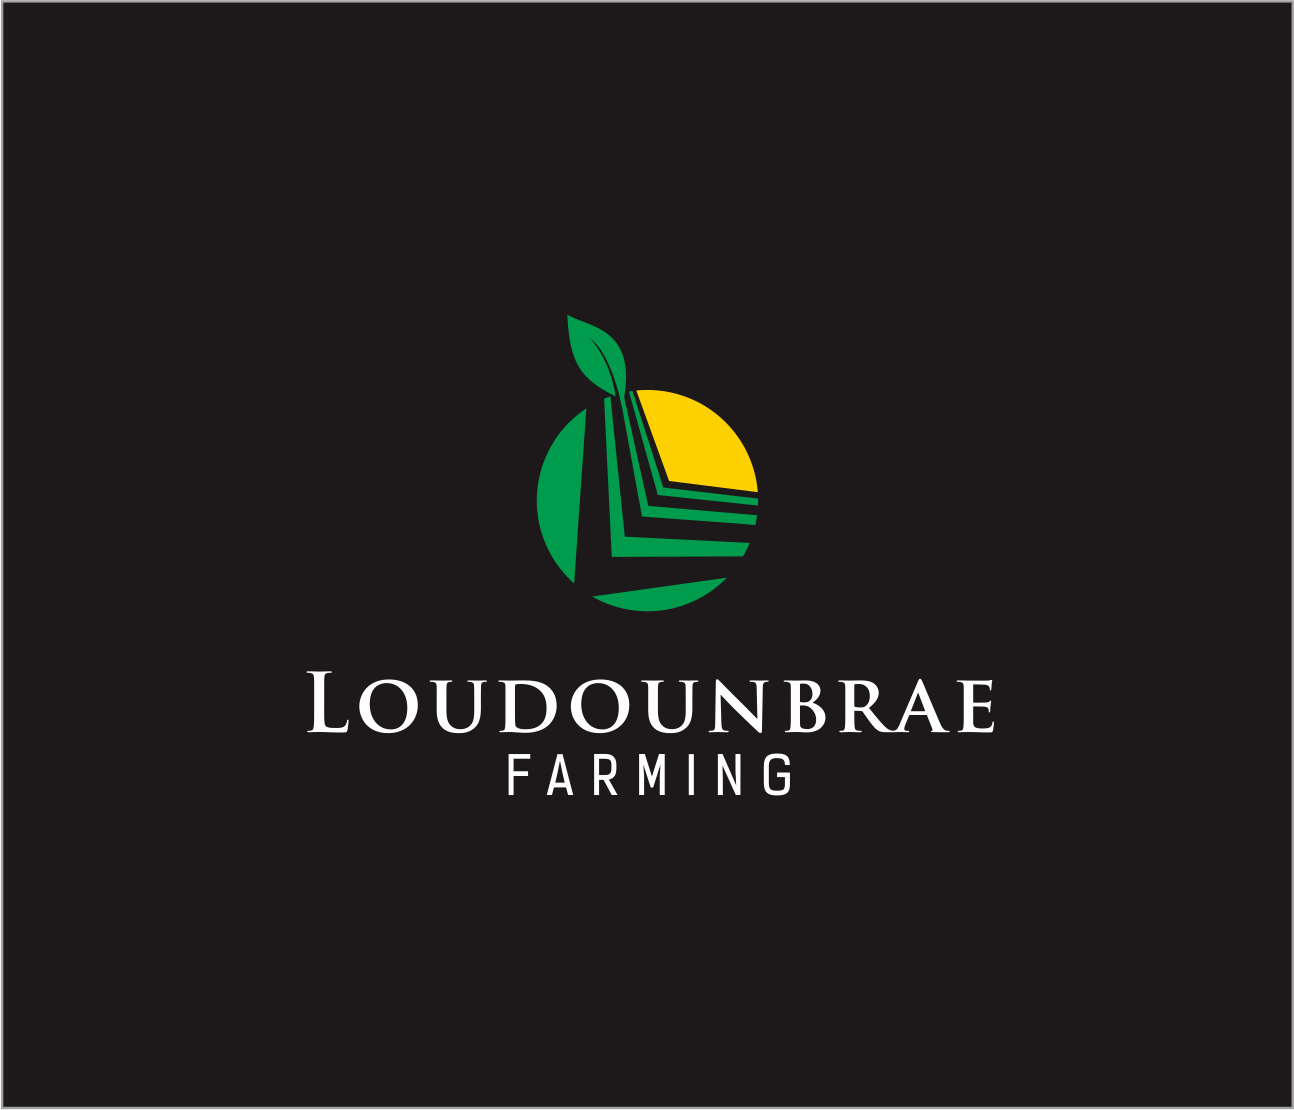 Logo Design by Armada Jamaluddin - Entry No. 48 in the Logo Design Contest Creative Logo Design for Loudounbrae Farming.